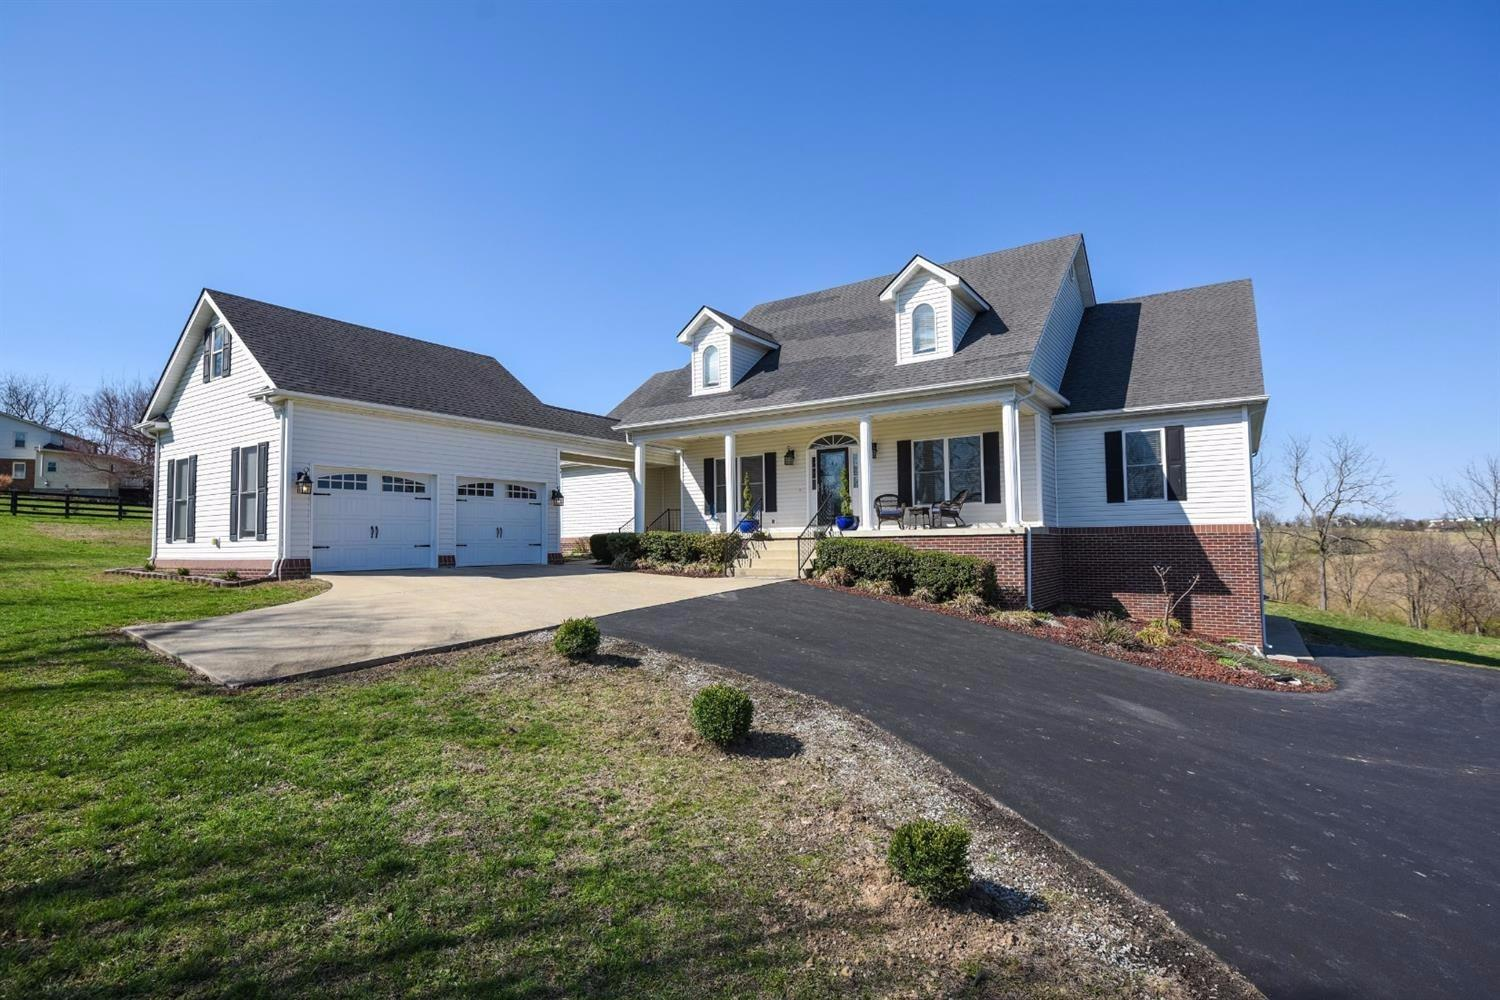 498 Elkin Station Rd, Winchester, KY 40391